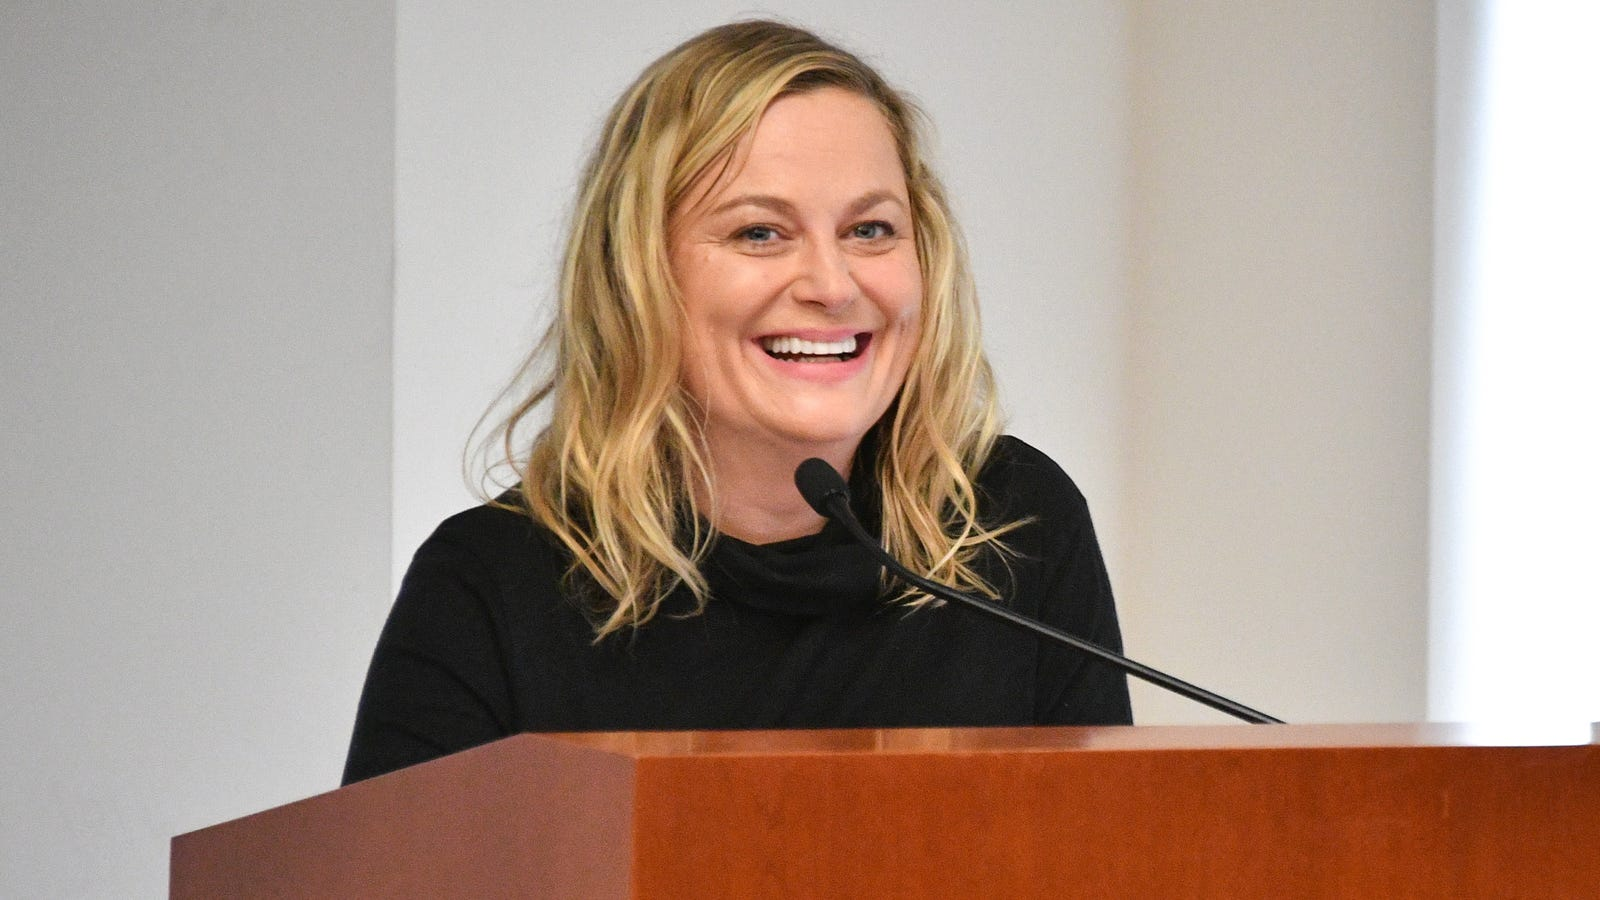 Amy Poehler to Direct and Star Alongside SNL Alumni for Netflix's Wine Country